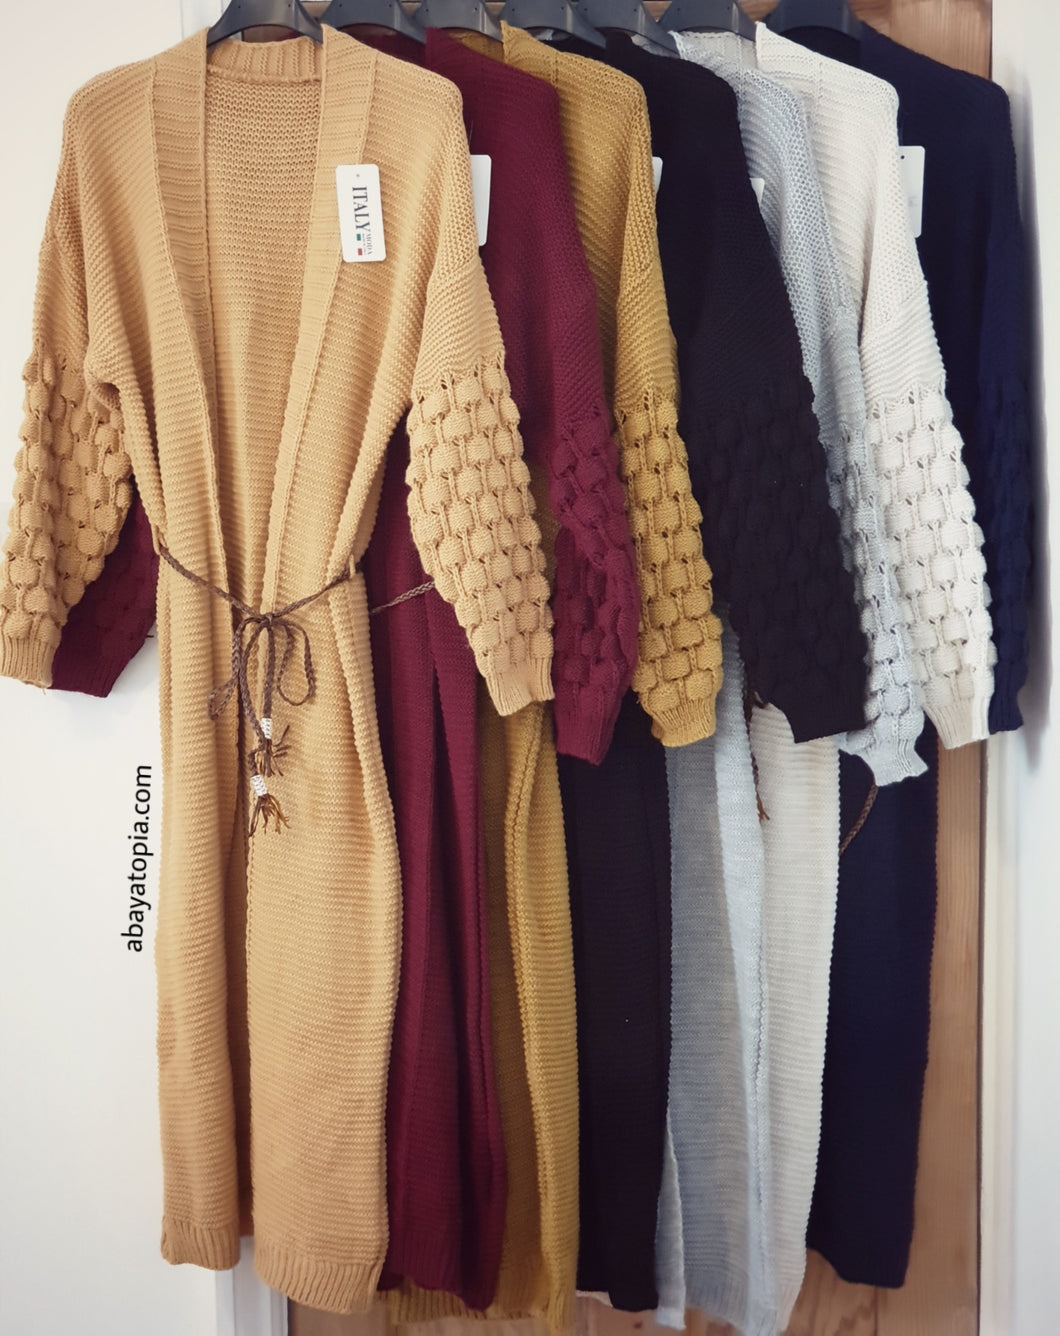 Long Knit Cardigan with Belt - Diff Colours